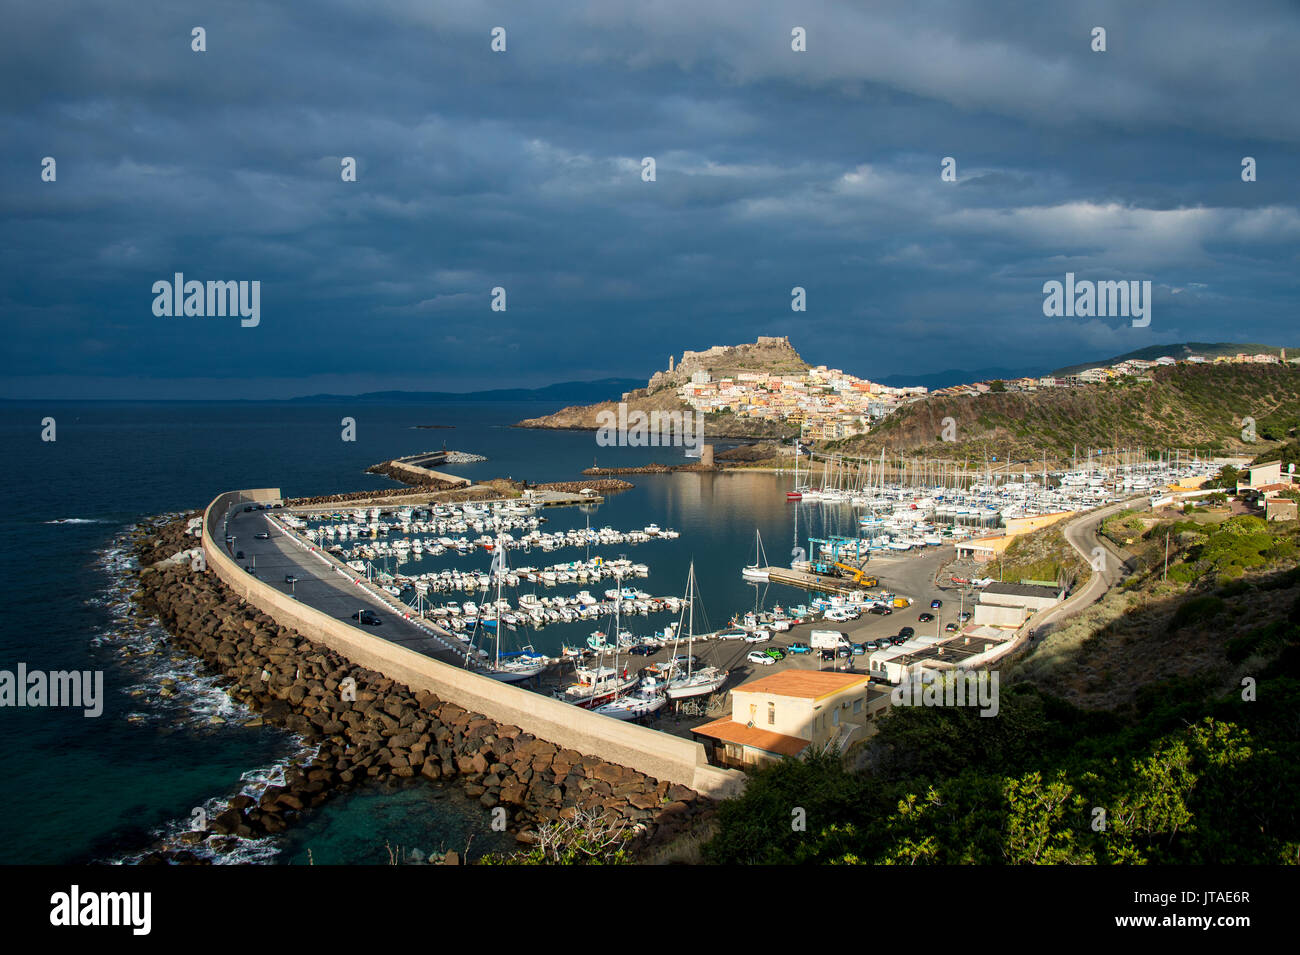 Dramatic light over the old town of Castelsardo with its boat harbour, Sardinia, Italy, Mediterranean, Europe - Stock Image